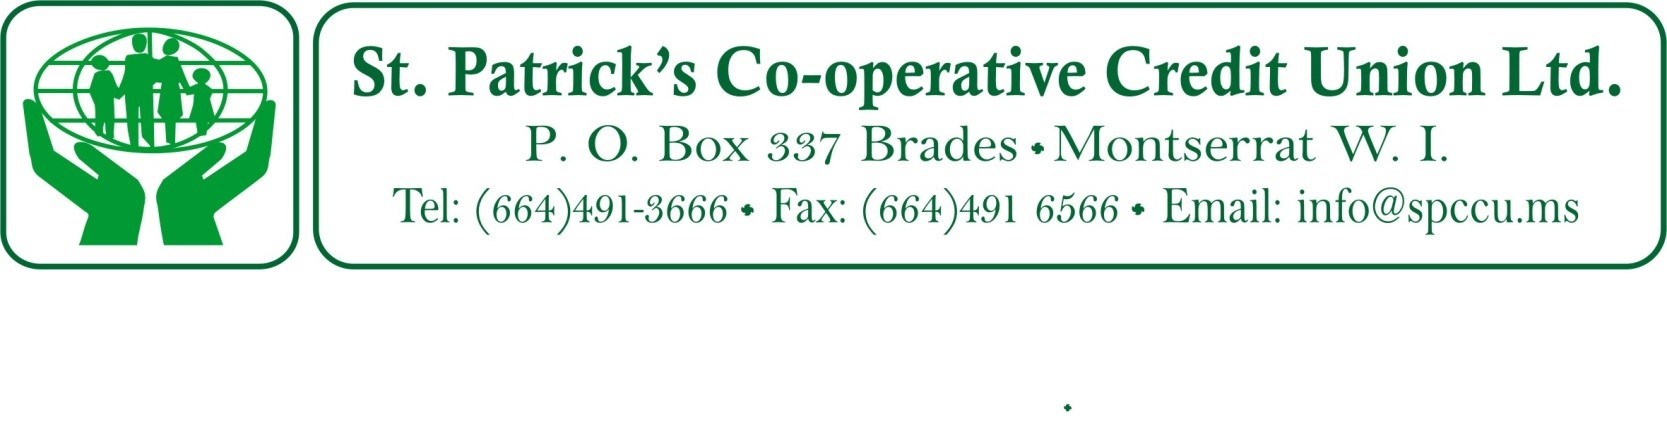 St Patricks Co-Operative Credit Union Ltd Vacancy Notice